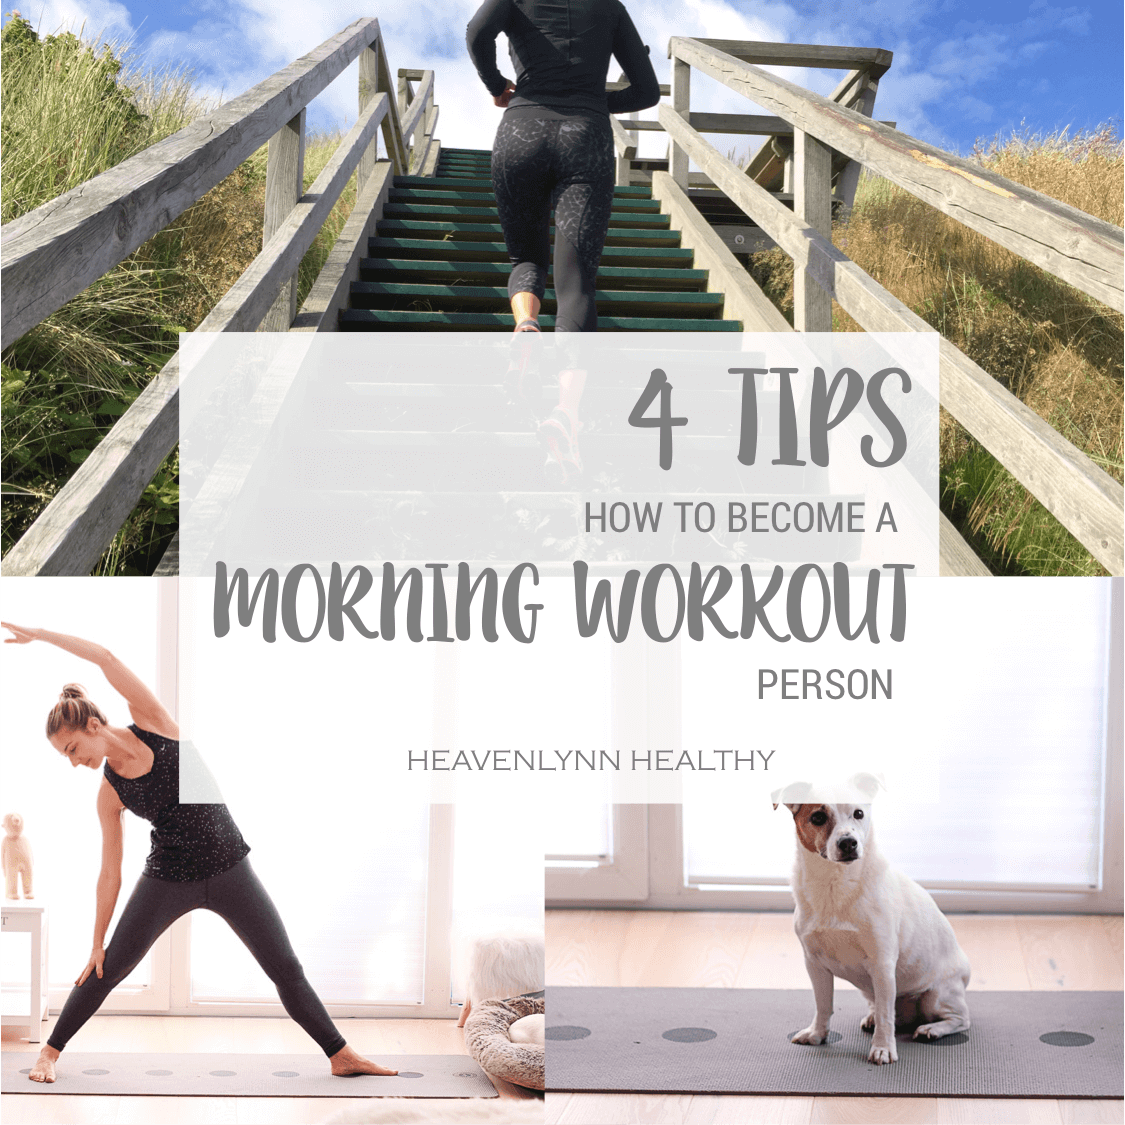 4 Tips to become a Morning Workout Person – H.A.P.P.Y. Challenge